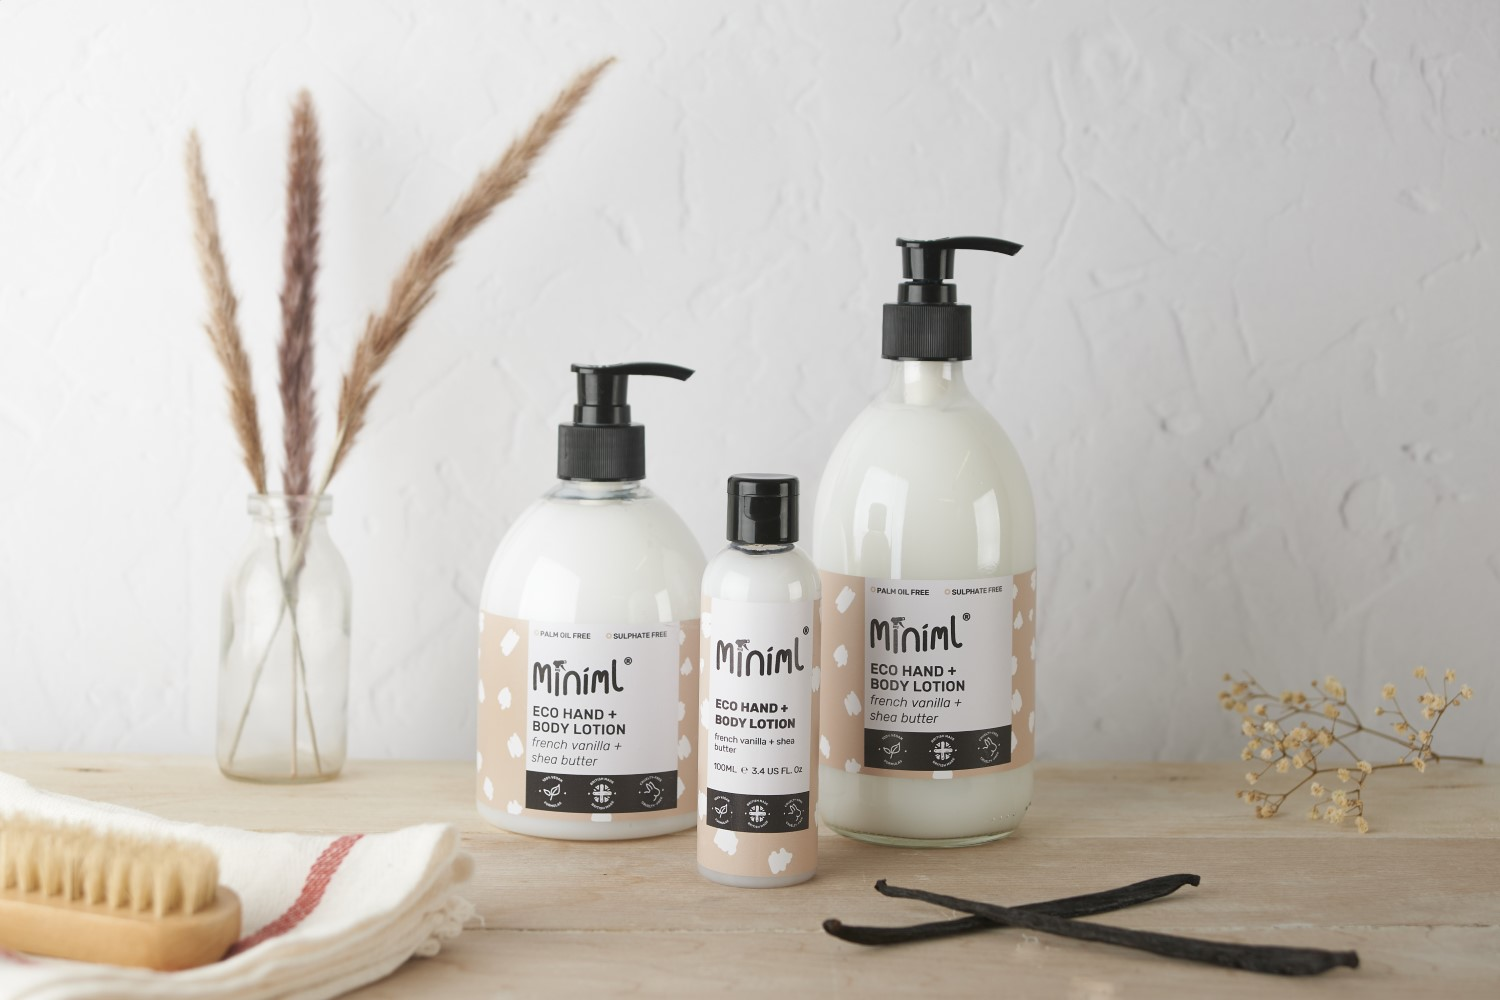 A styled product photograph of apothecary product bottles with an old plaster effect backdrop